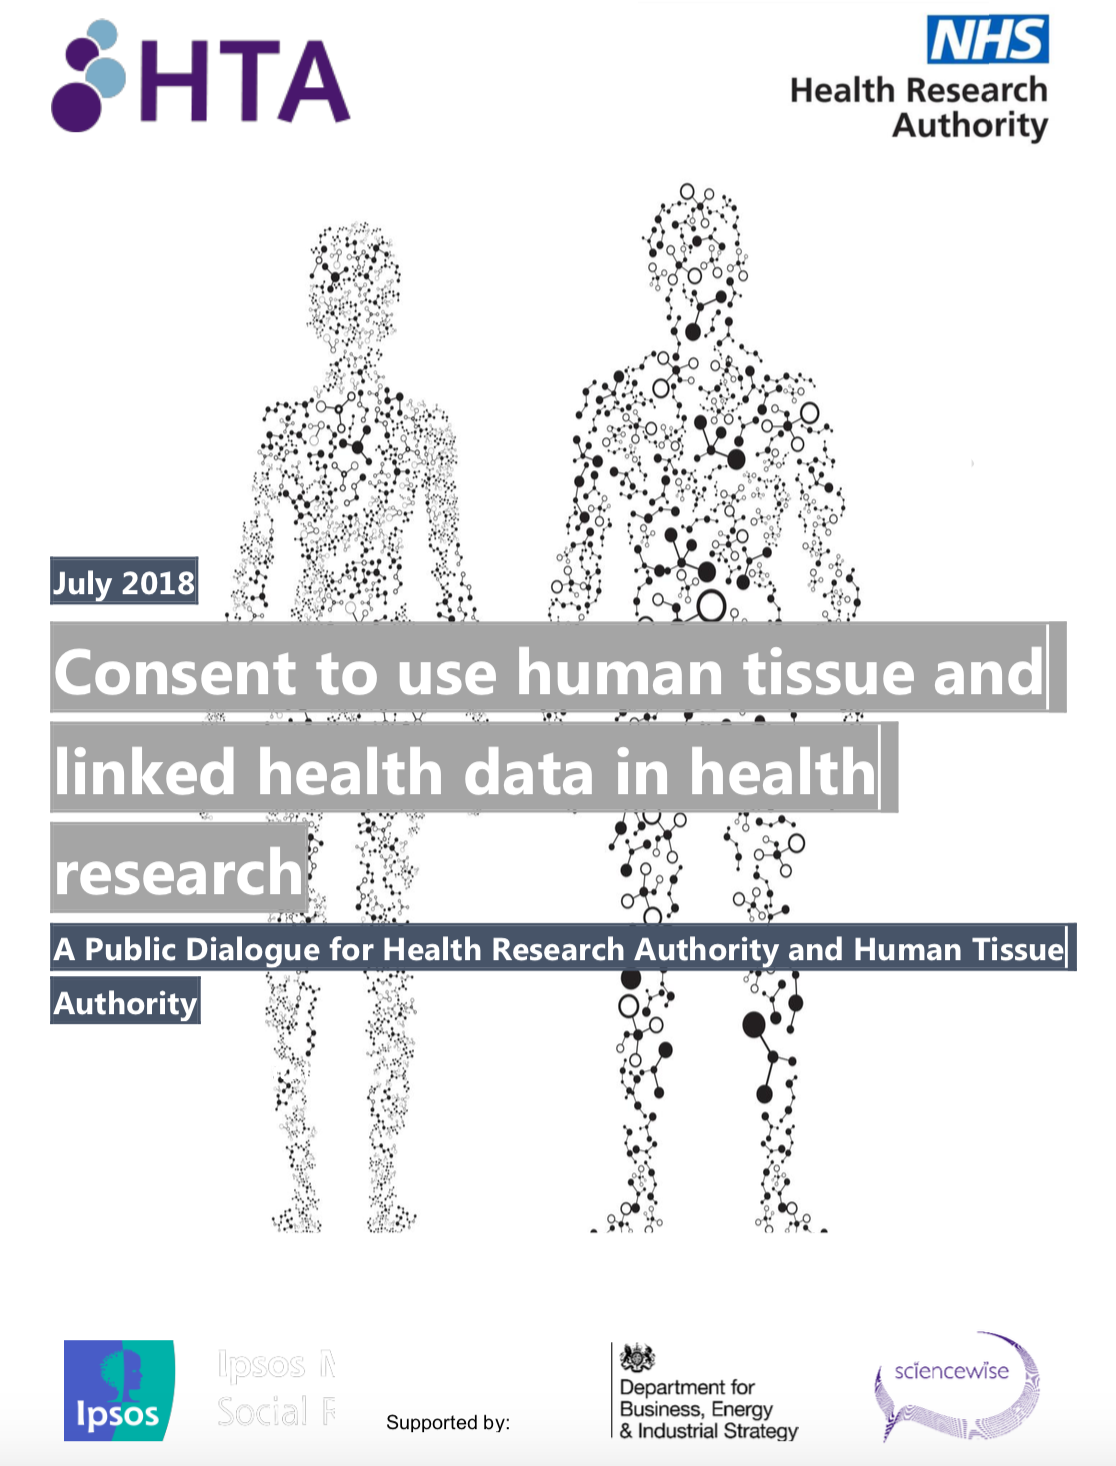 The image features the report title with two human silhouettes made up of molecules in the background.